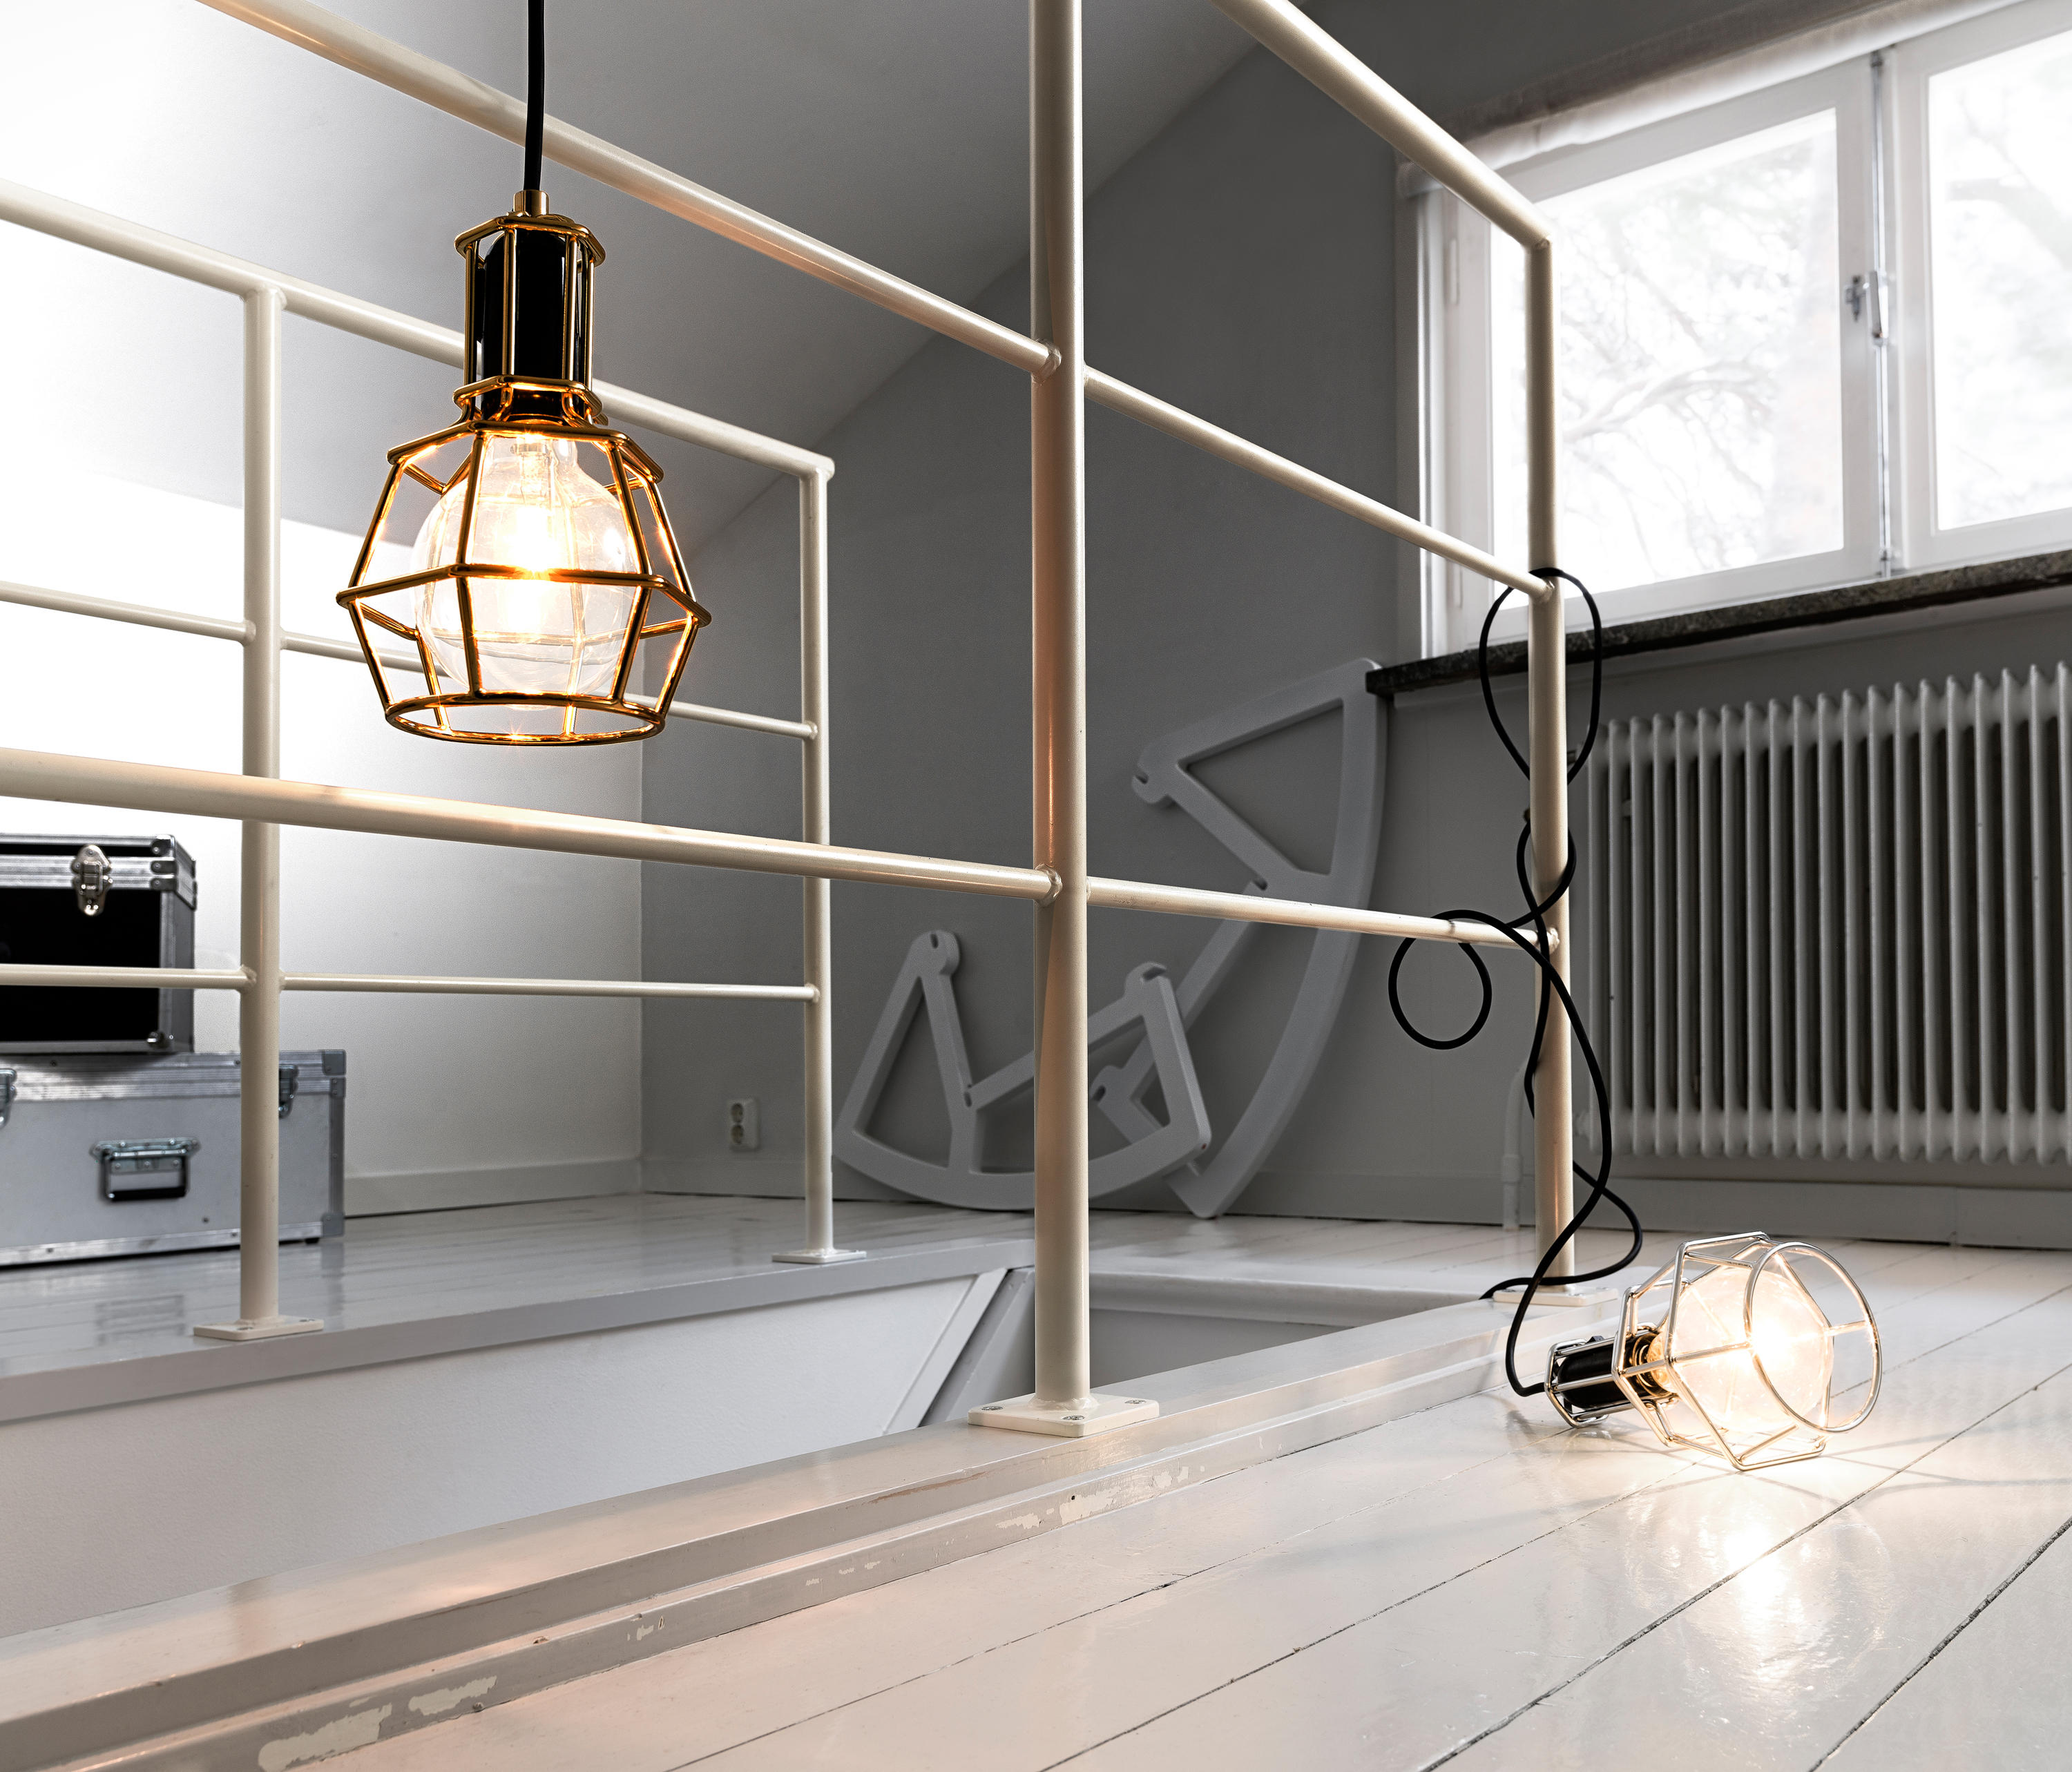 work lamp general lighting from design house stockholm architonic. Black Bedroom Furniture Sets. Home Design Ideas